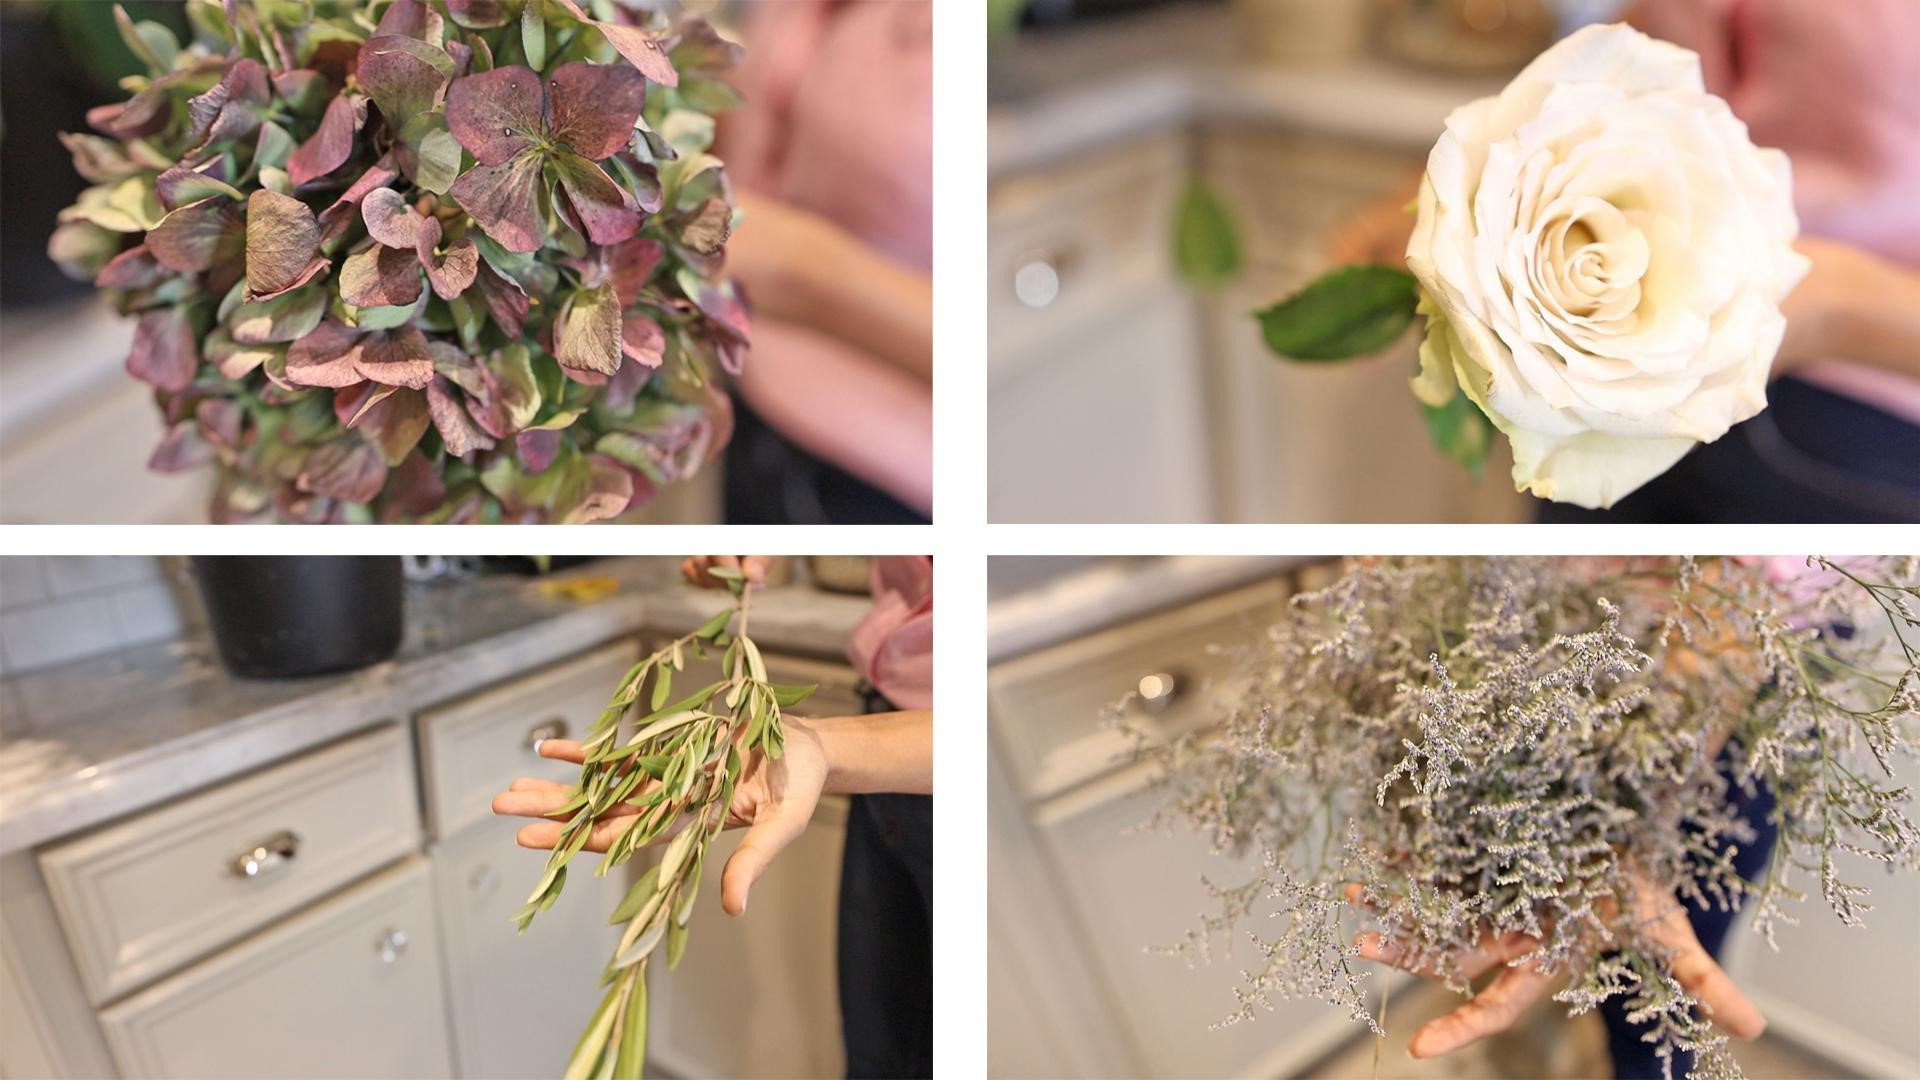 Amitha shows her favorite flowers for large arrangements, hydrangeas, roses, olive branches, and sea lavenders